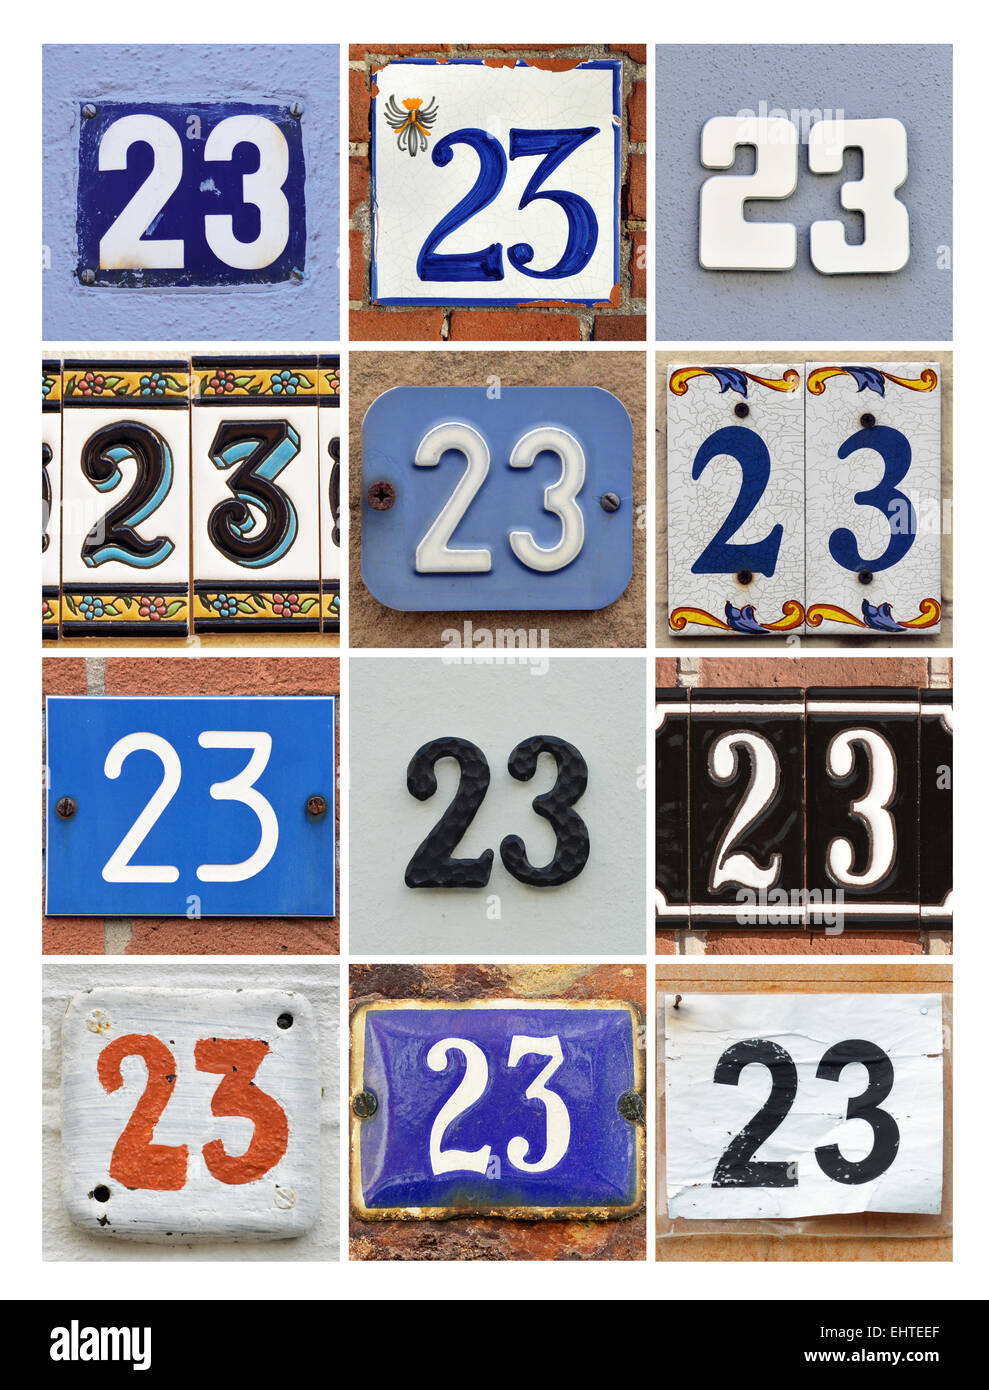 Number 23 - Collage of House Numbers Twenty-three - Stock Image